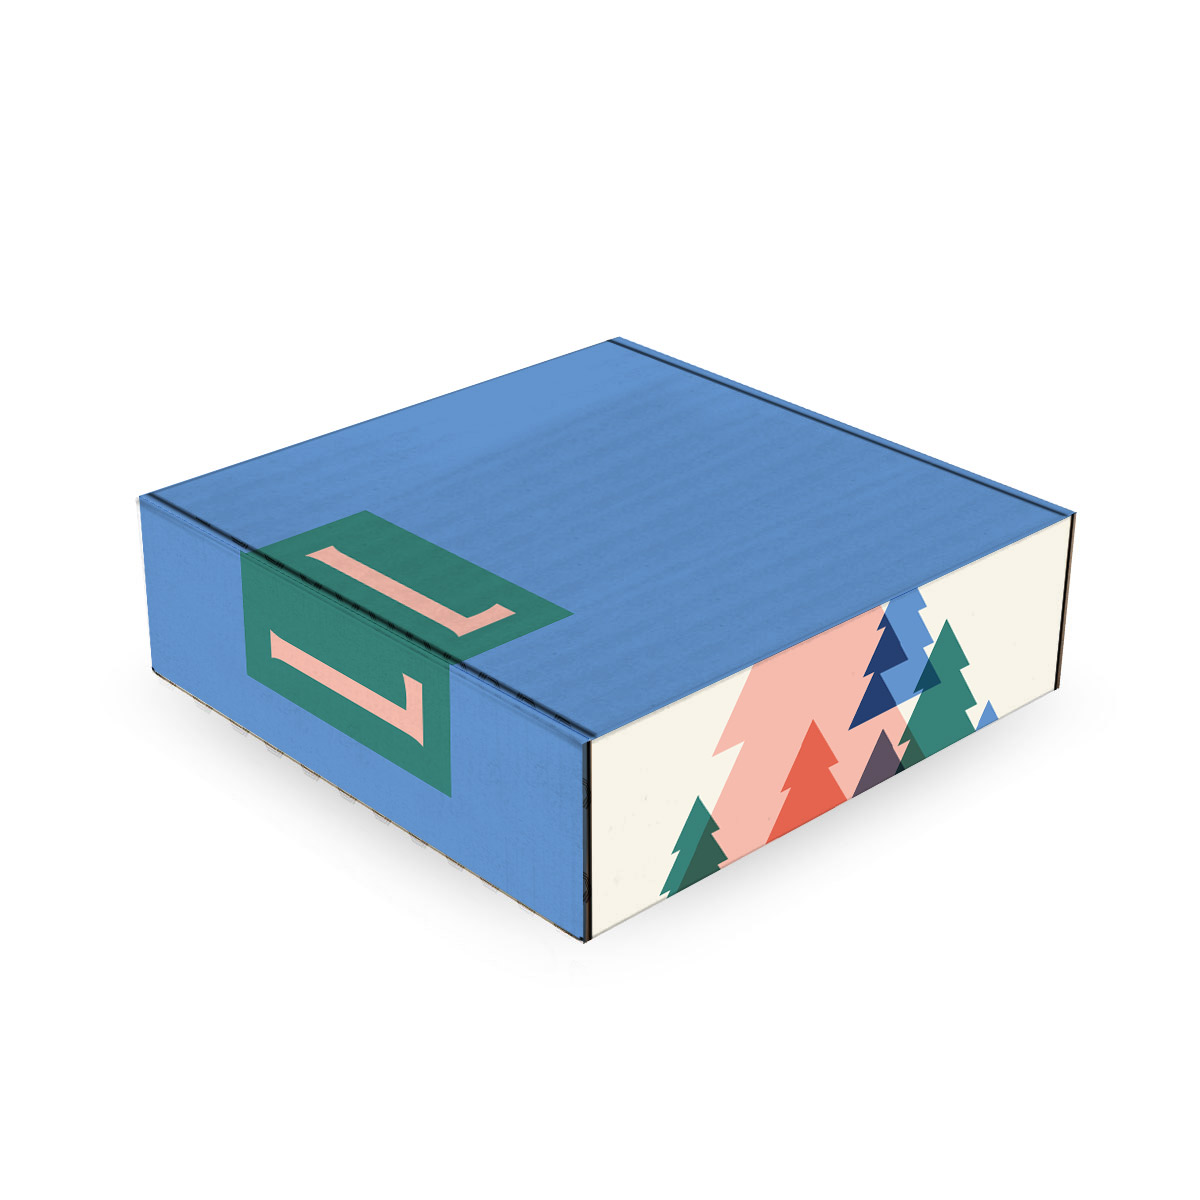 236106 custom mailer box 10 x 10 x 3 duplex full color inside and out